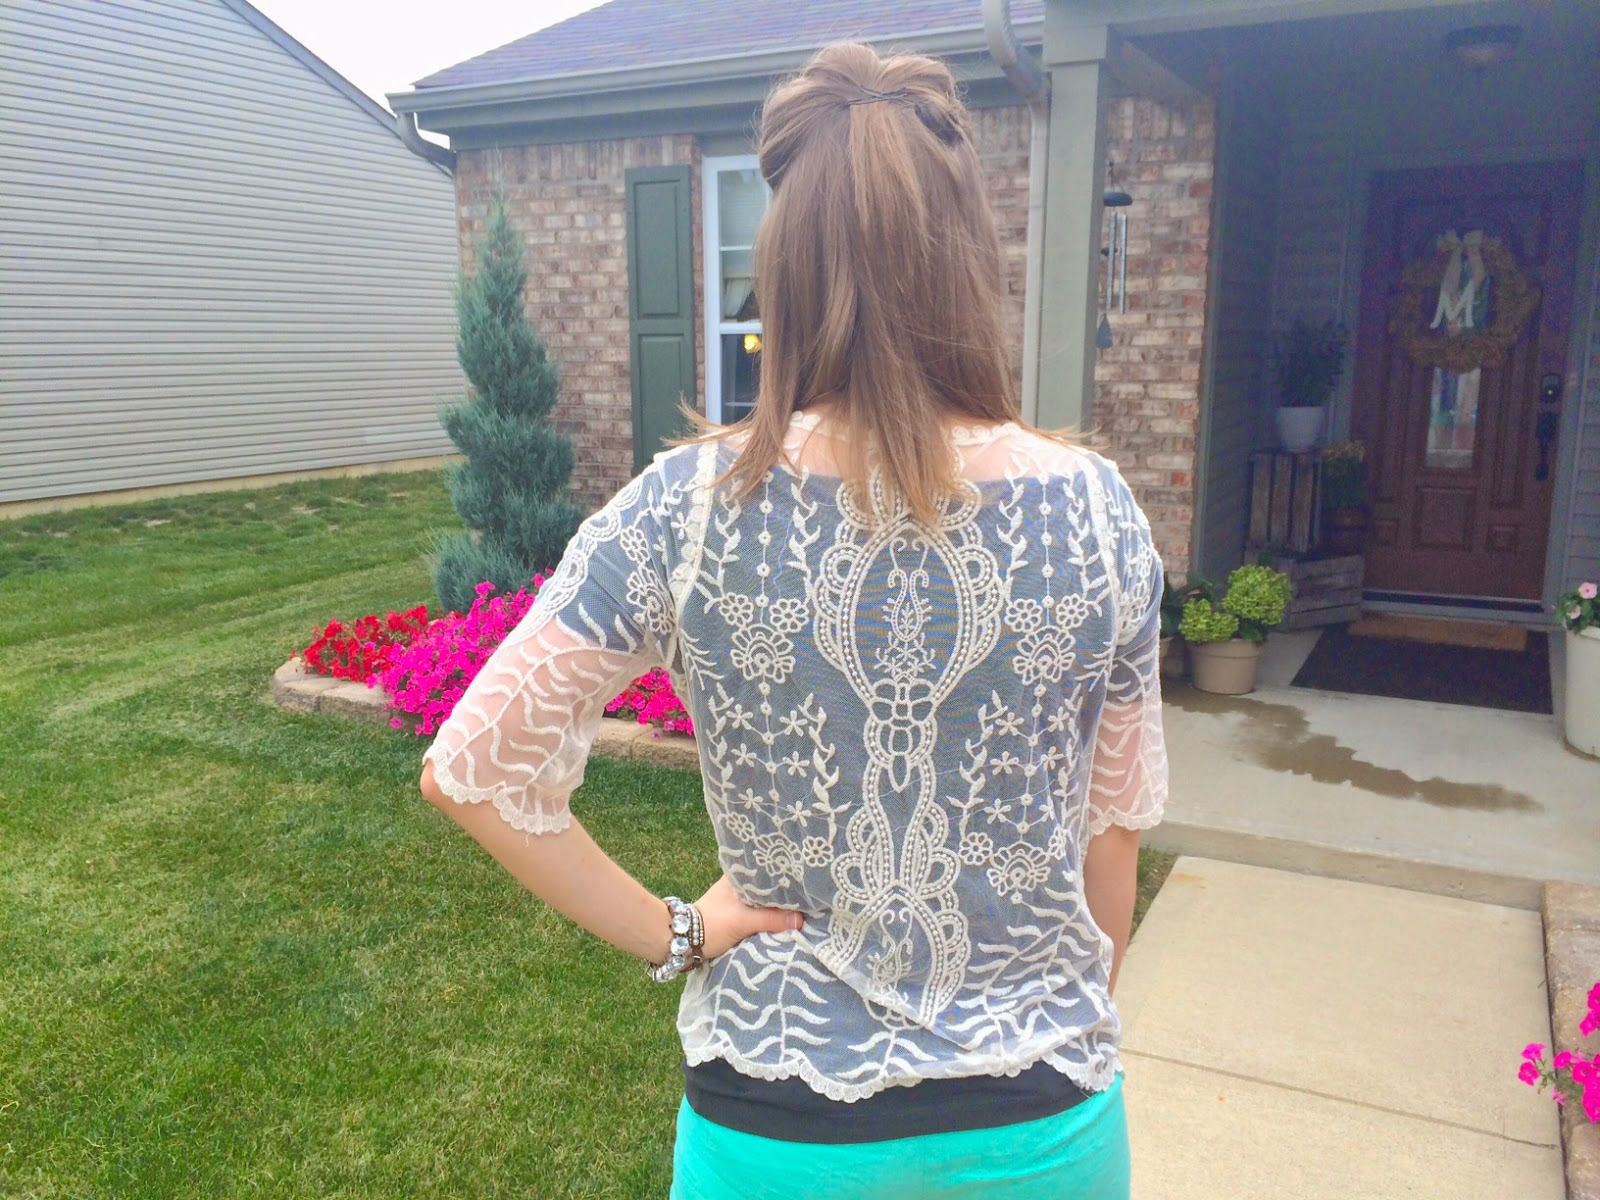 Summer Lace Top Outfit Of The Day